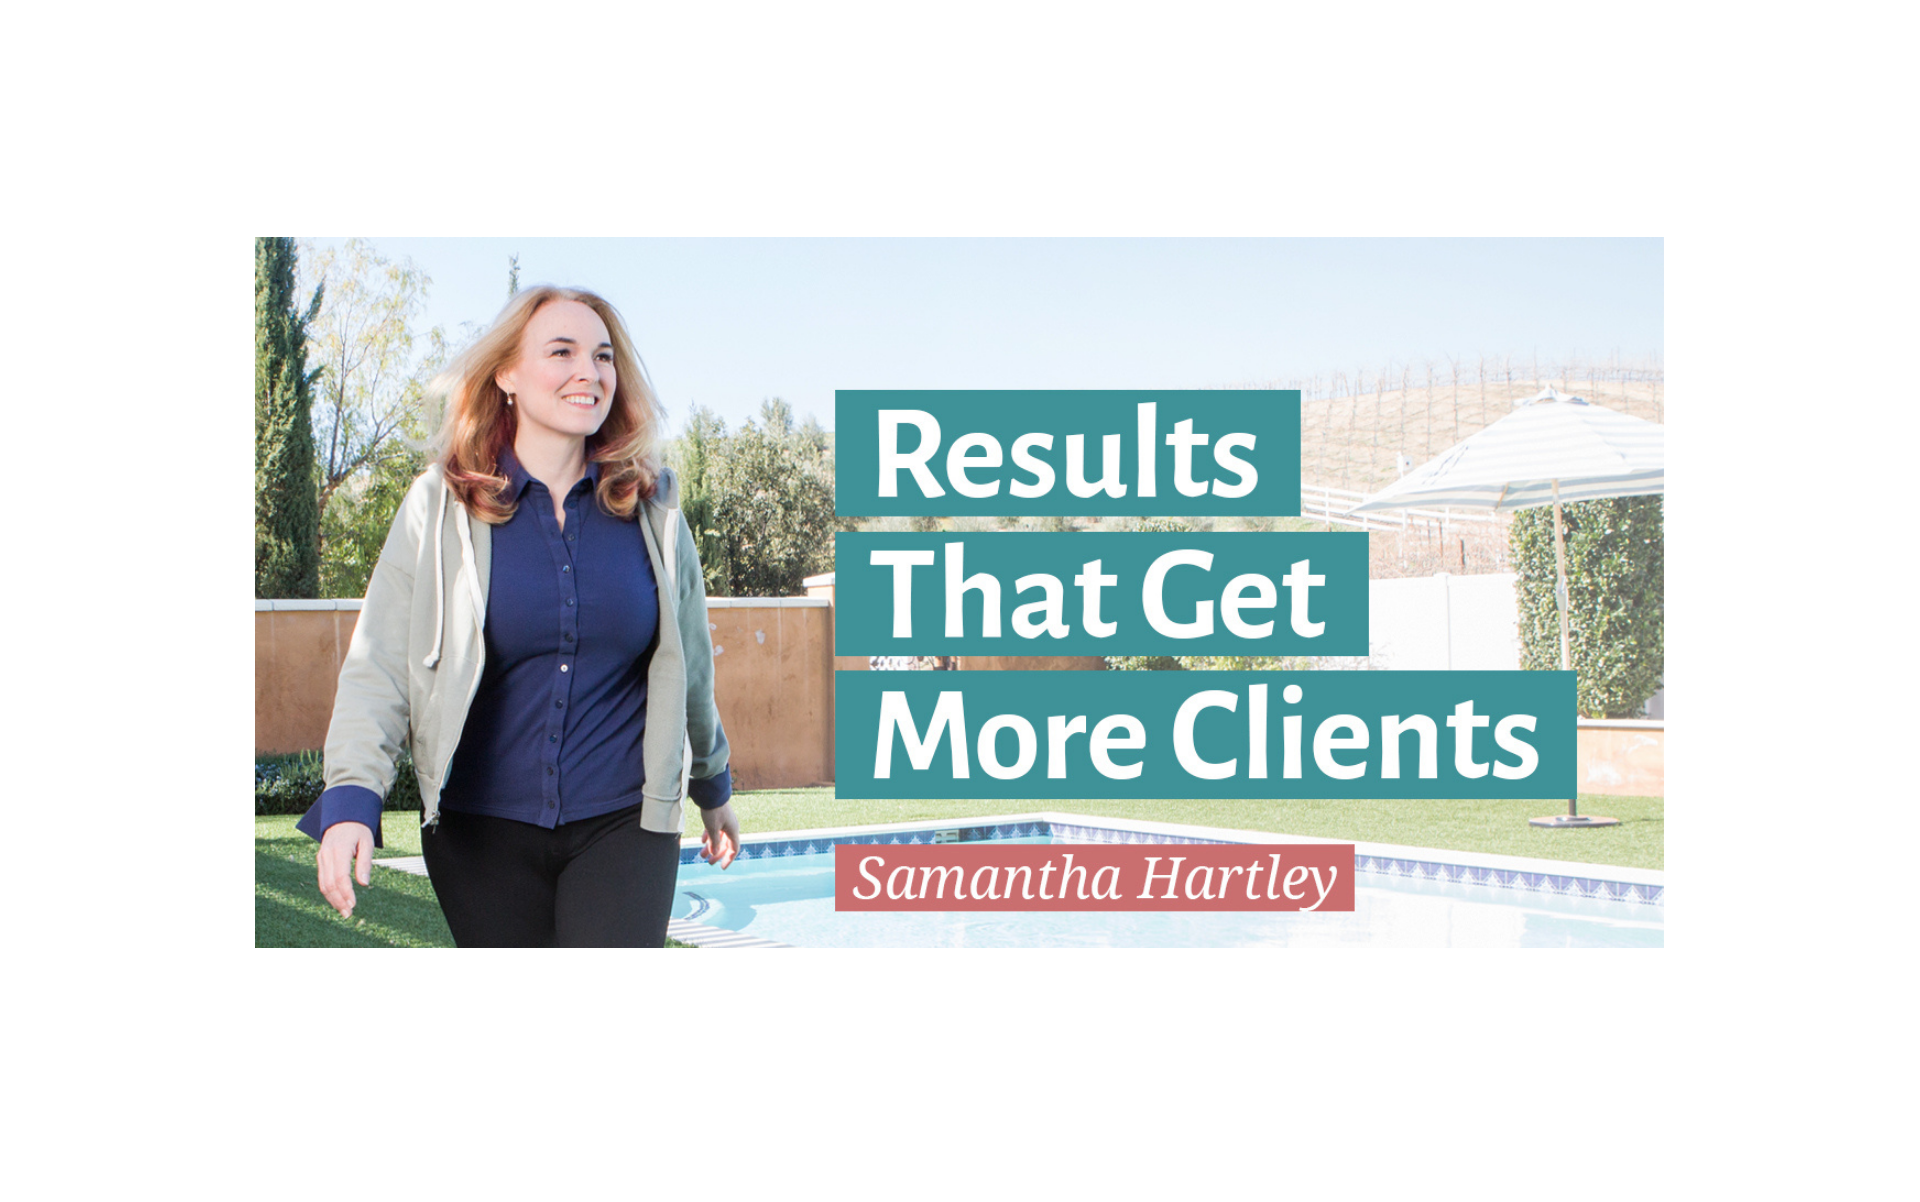 Results That Get More Clients